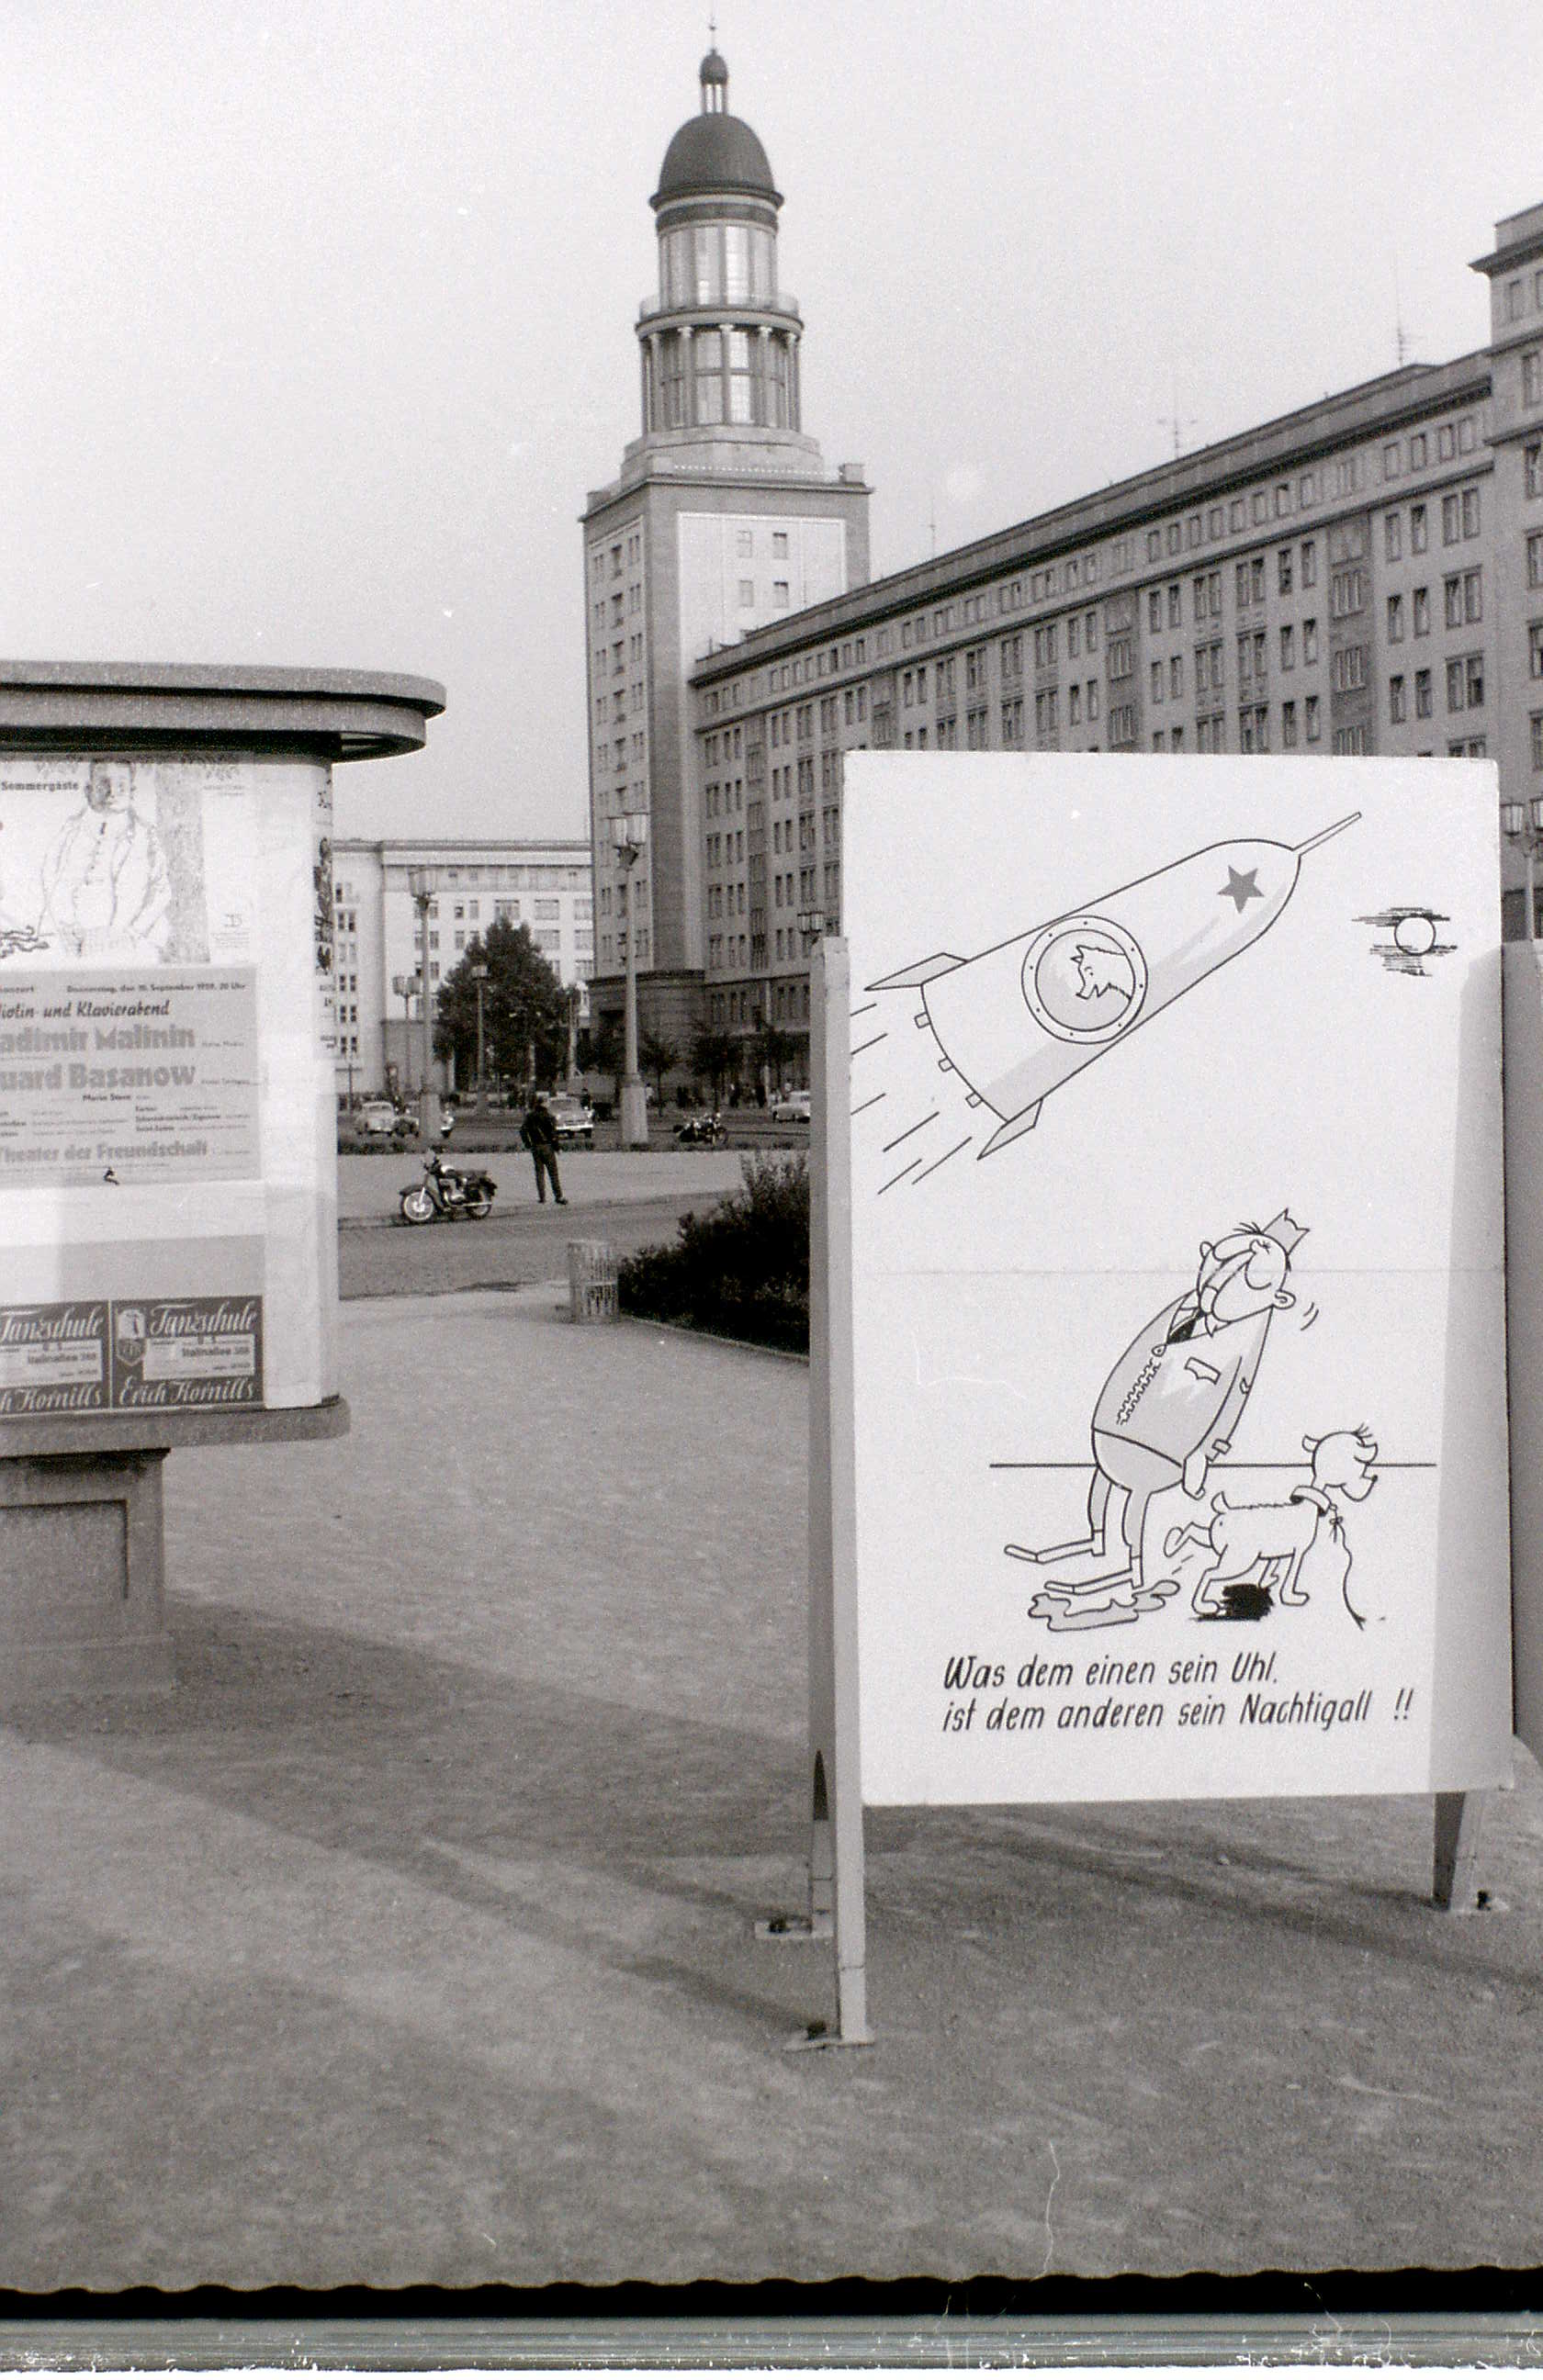 Stalinallee, East Berlin, 8 September 1959